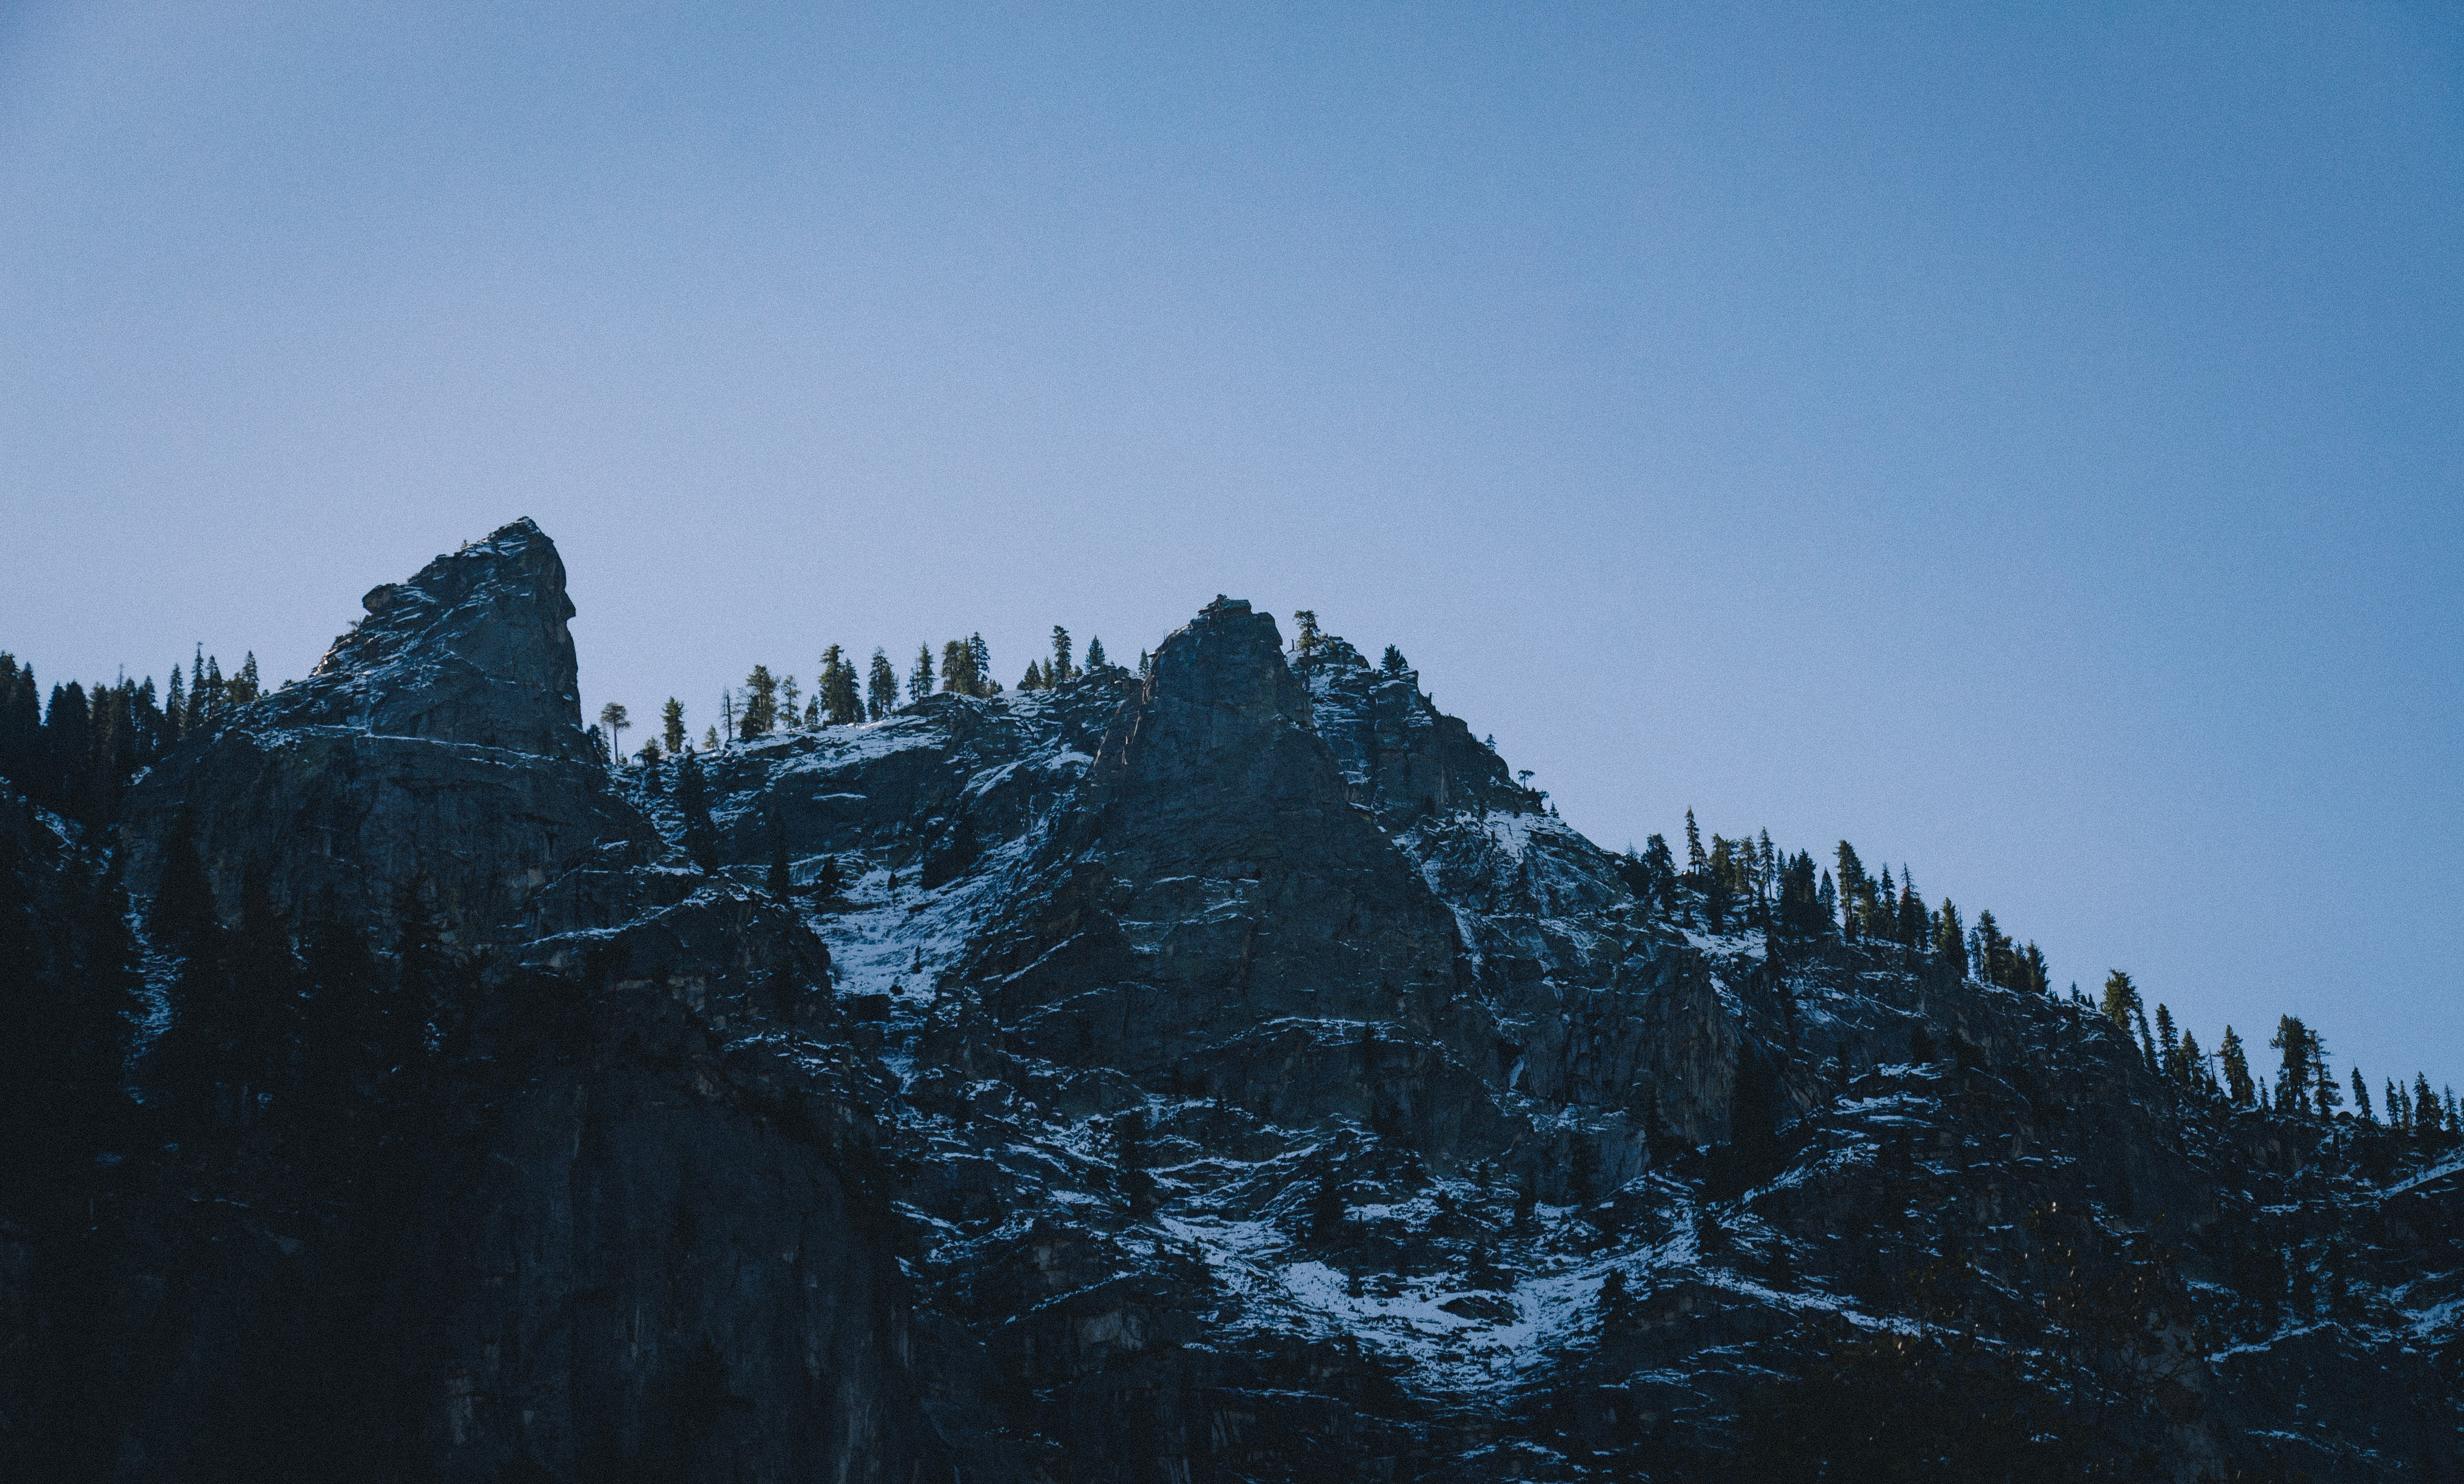 The forest mixes with snow on a rocky mountainside in Yosemite Valley